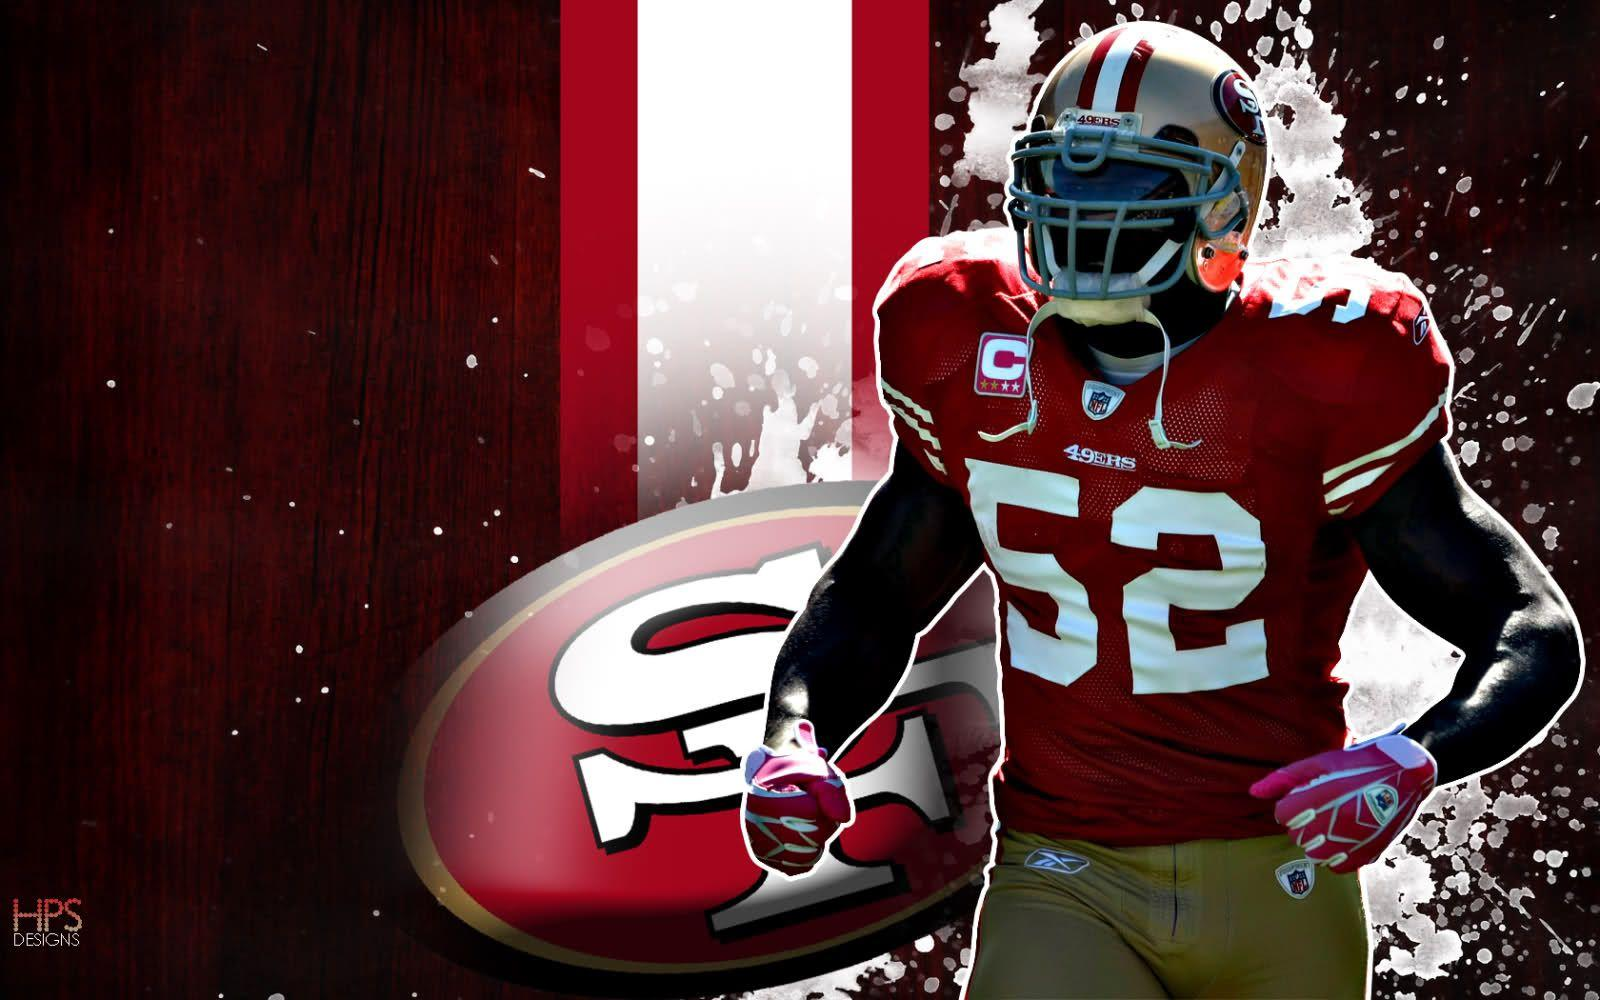 2010 49ers Graphics, Wallpapers, Schedules, Photoshop ...